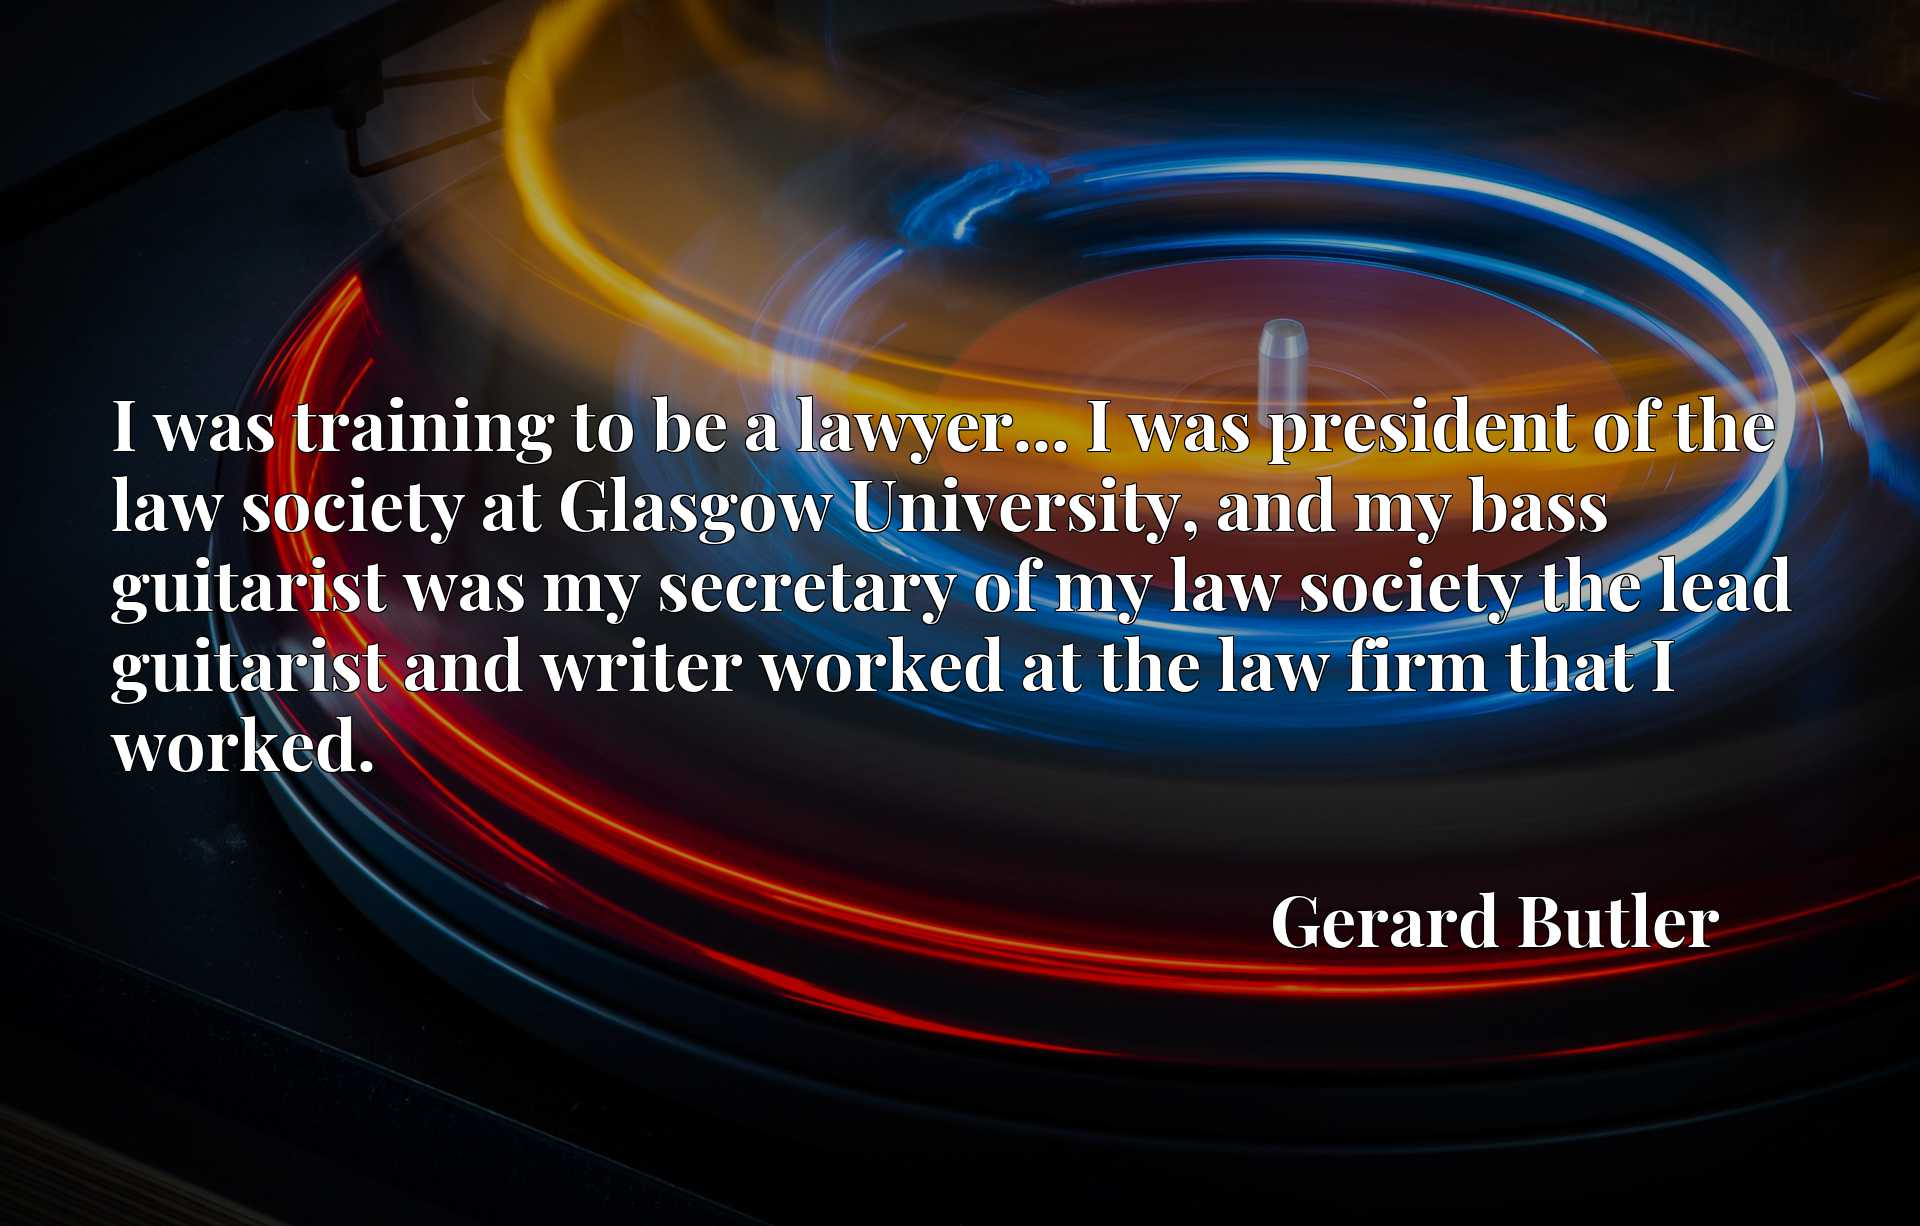 I was training to be a lawyer... I was president of the law society at Glasgow University, and my bass guitarist was my secretary of my law society the lead guitarist and writer worked at the law firm that I worked.